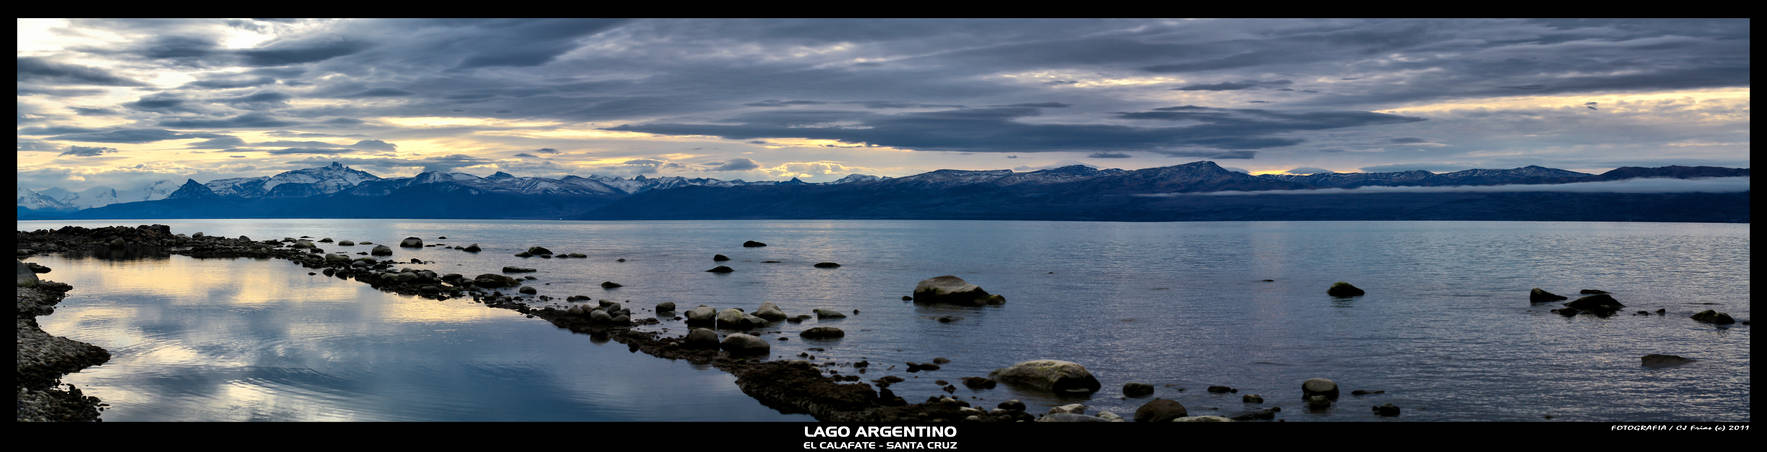 Panoramica Lago Argentino by yocar